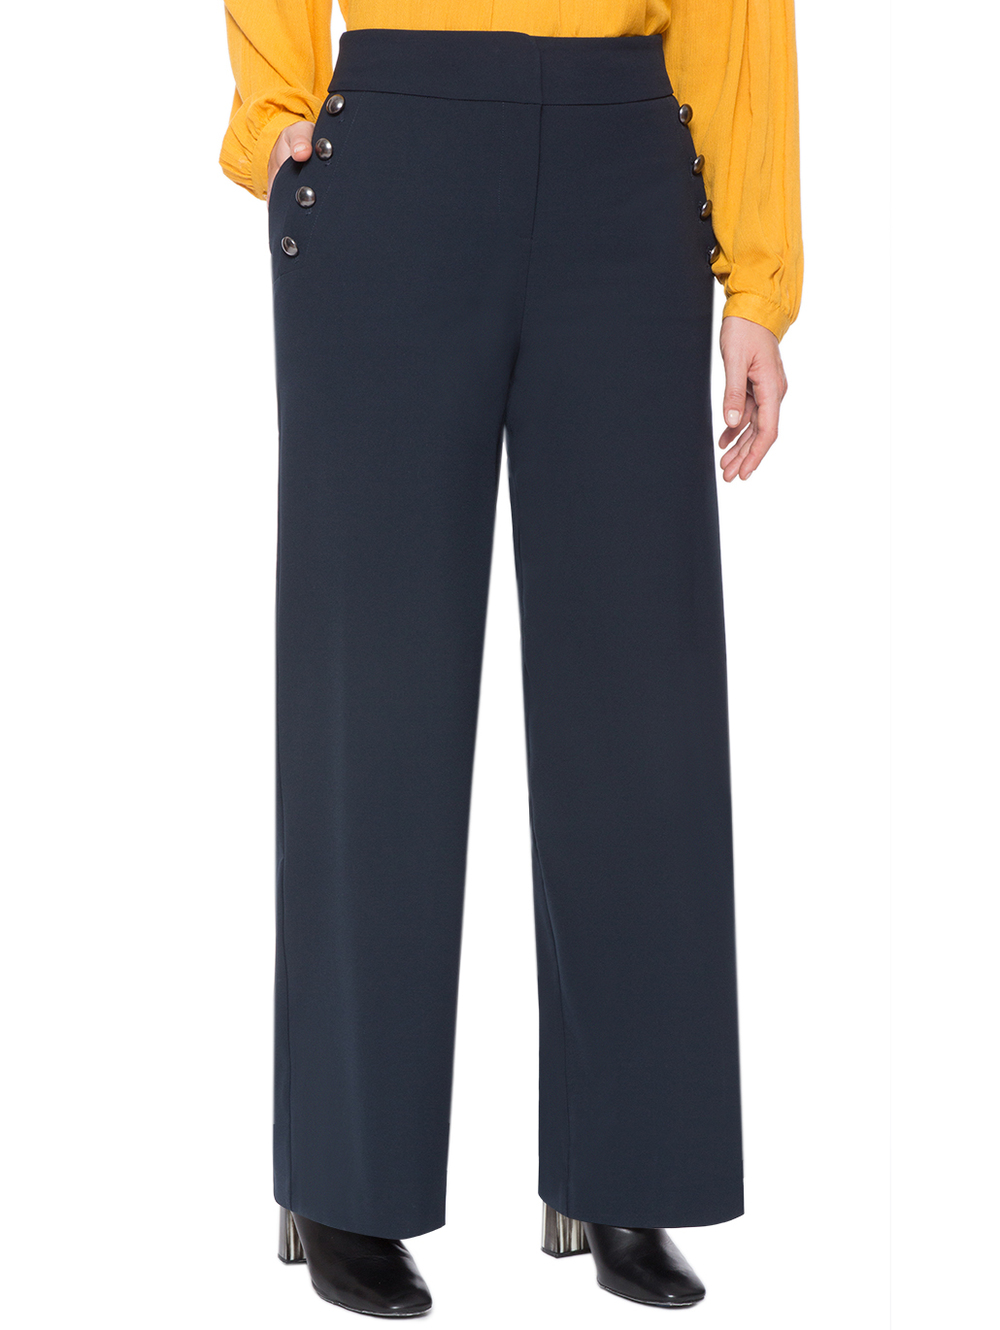 Button Detail Wide Leg Trouser. Eloquii. $59. ($50 off every $100 you spend with code: ENJOY). (midnight blue, Polyester)